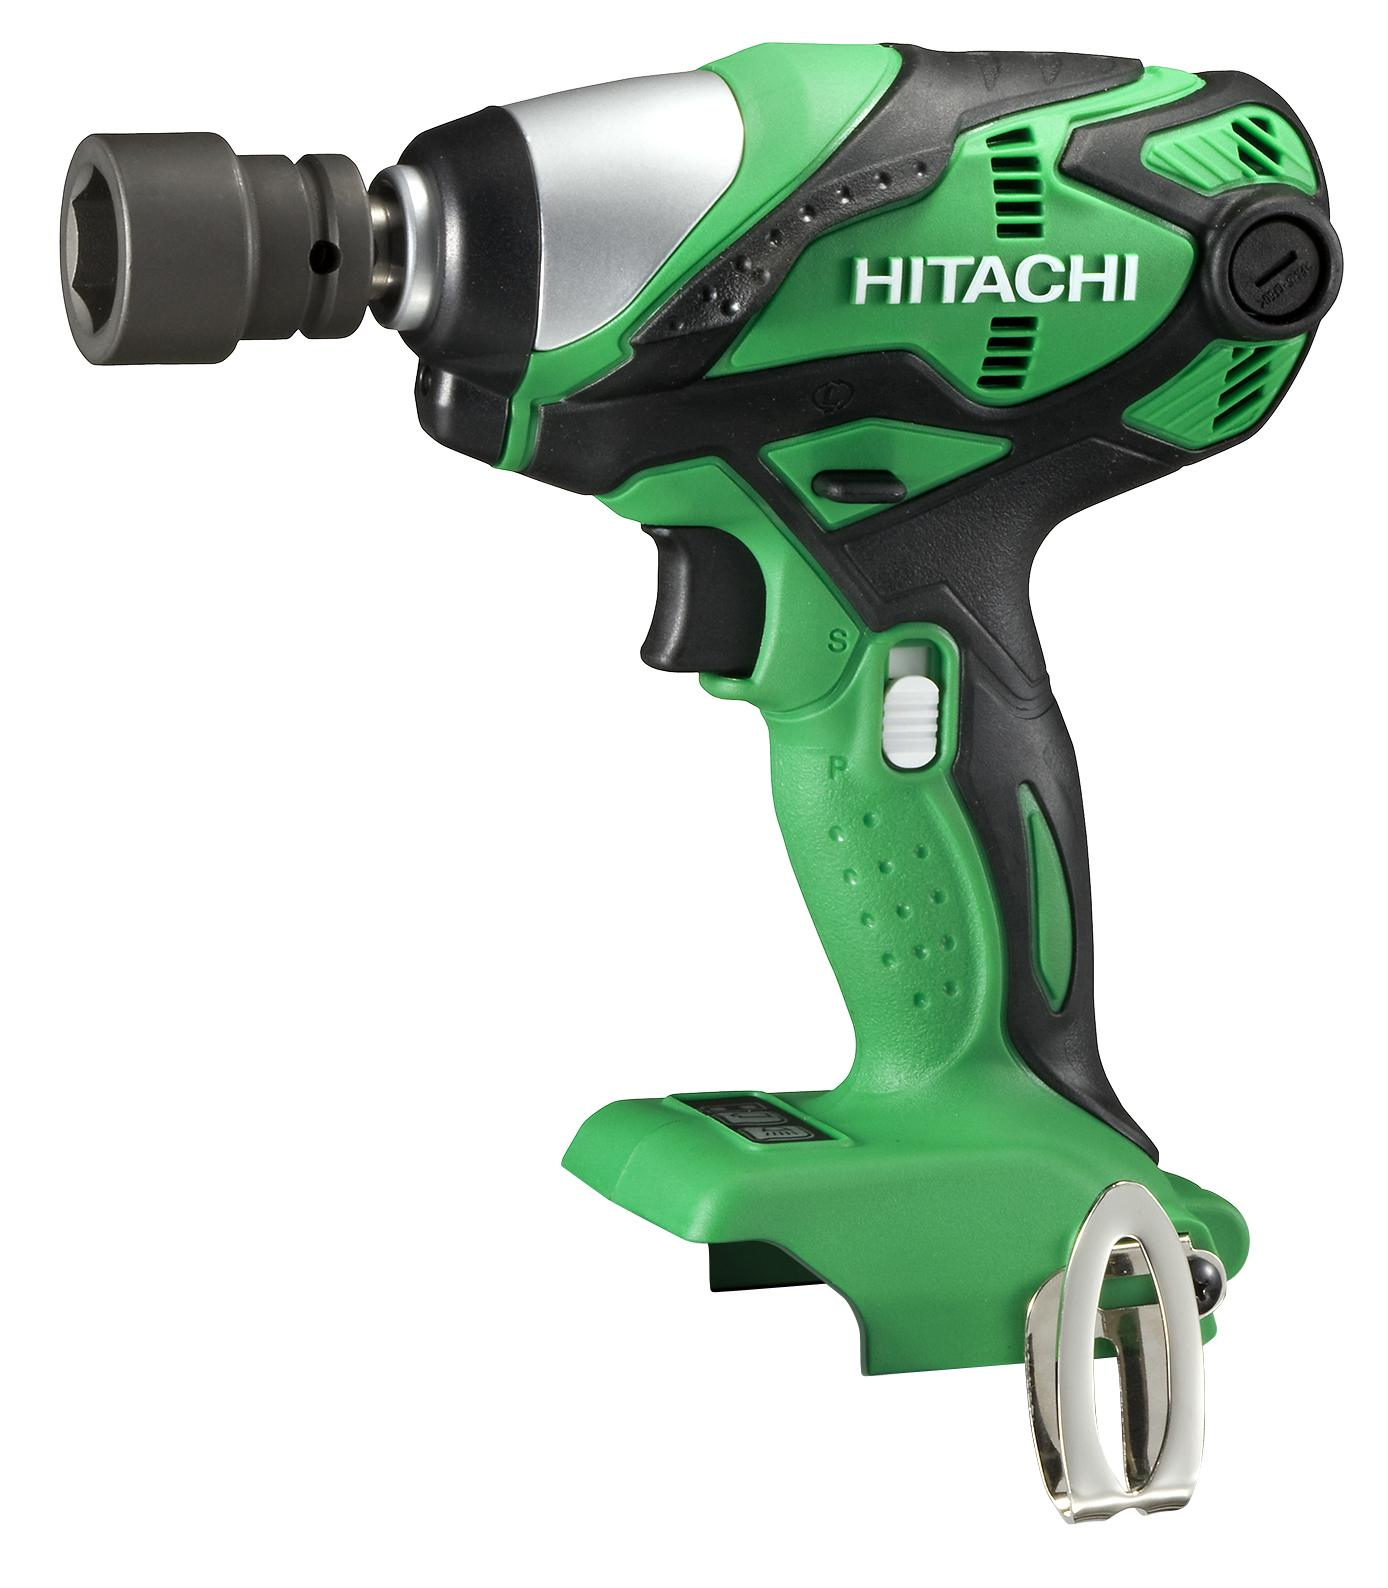 Hitachi 18V PRO Series Impact Wrench Bare Tool